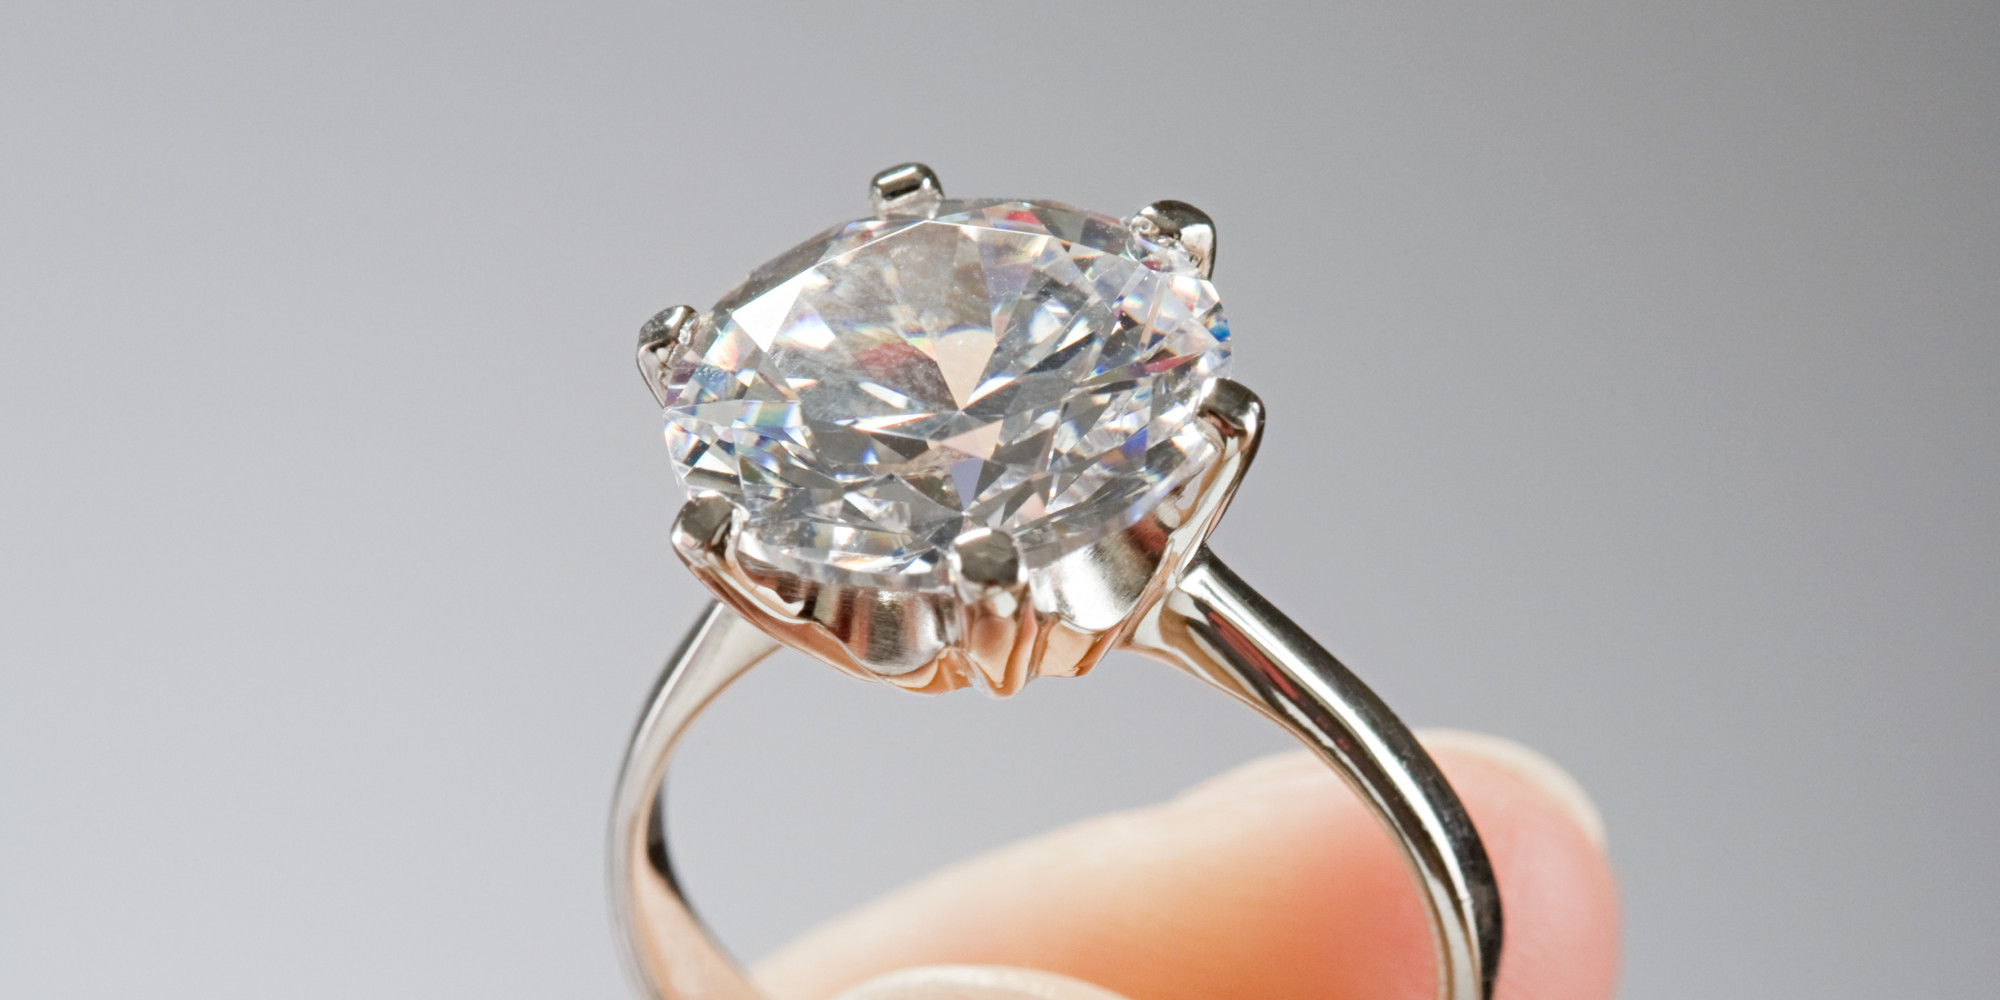 How expensive are wedding rings. How Important is an Expensive Engagement Ring?